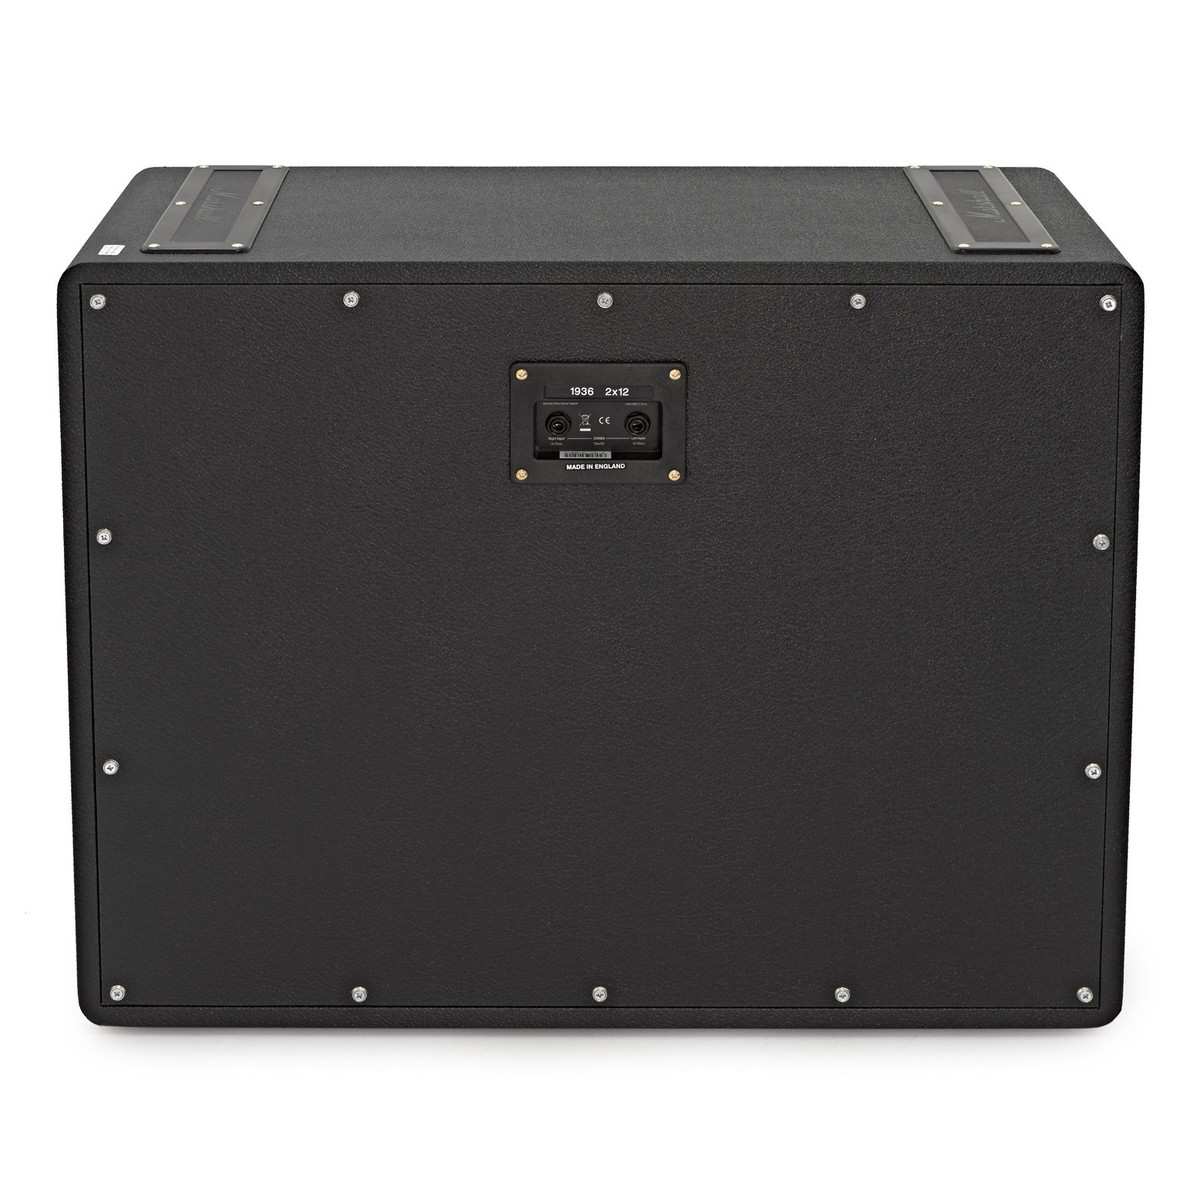 marshall 1936v vintage 2 x 12 39 39 guitar speaker cabinet at gear4music. Black Bedroom Furniture Sets. Home Design Ideas